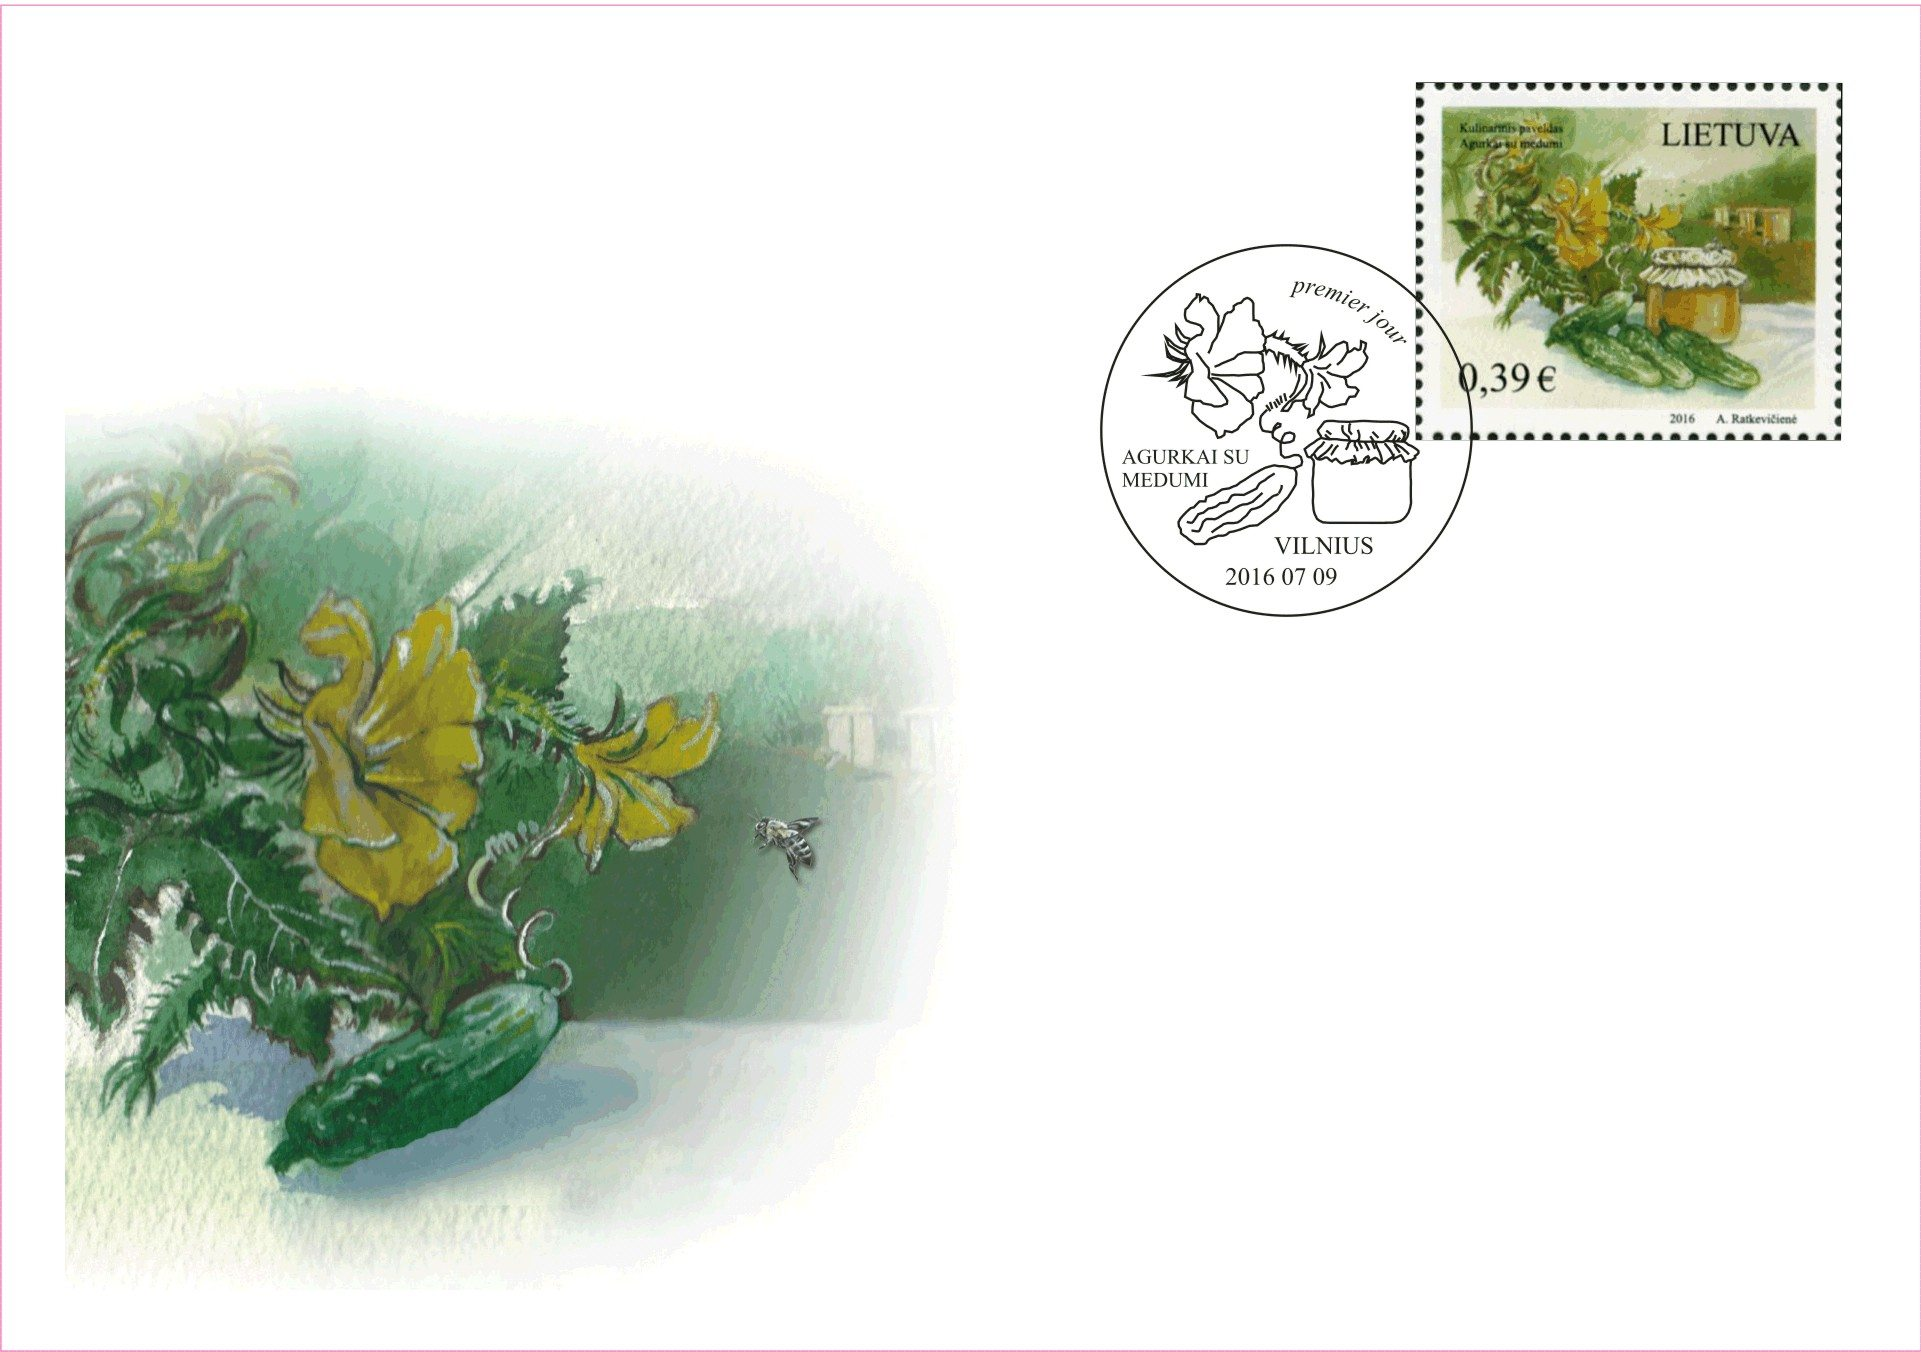 Lithuania Post: Gastronomic Heritage of Lithuania First Day Cover